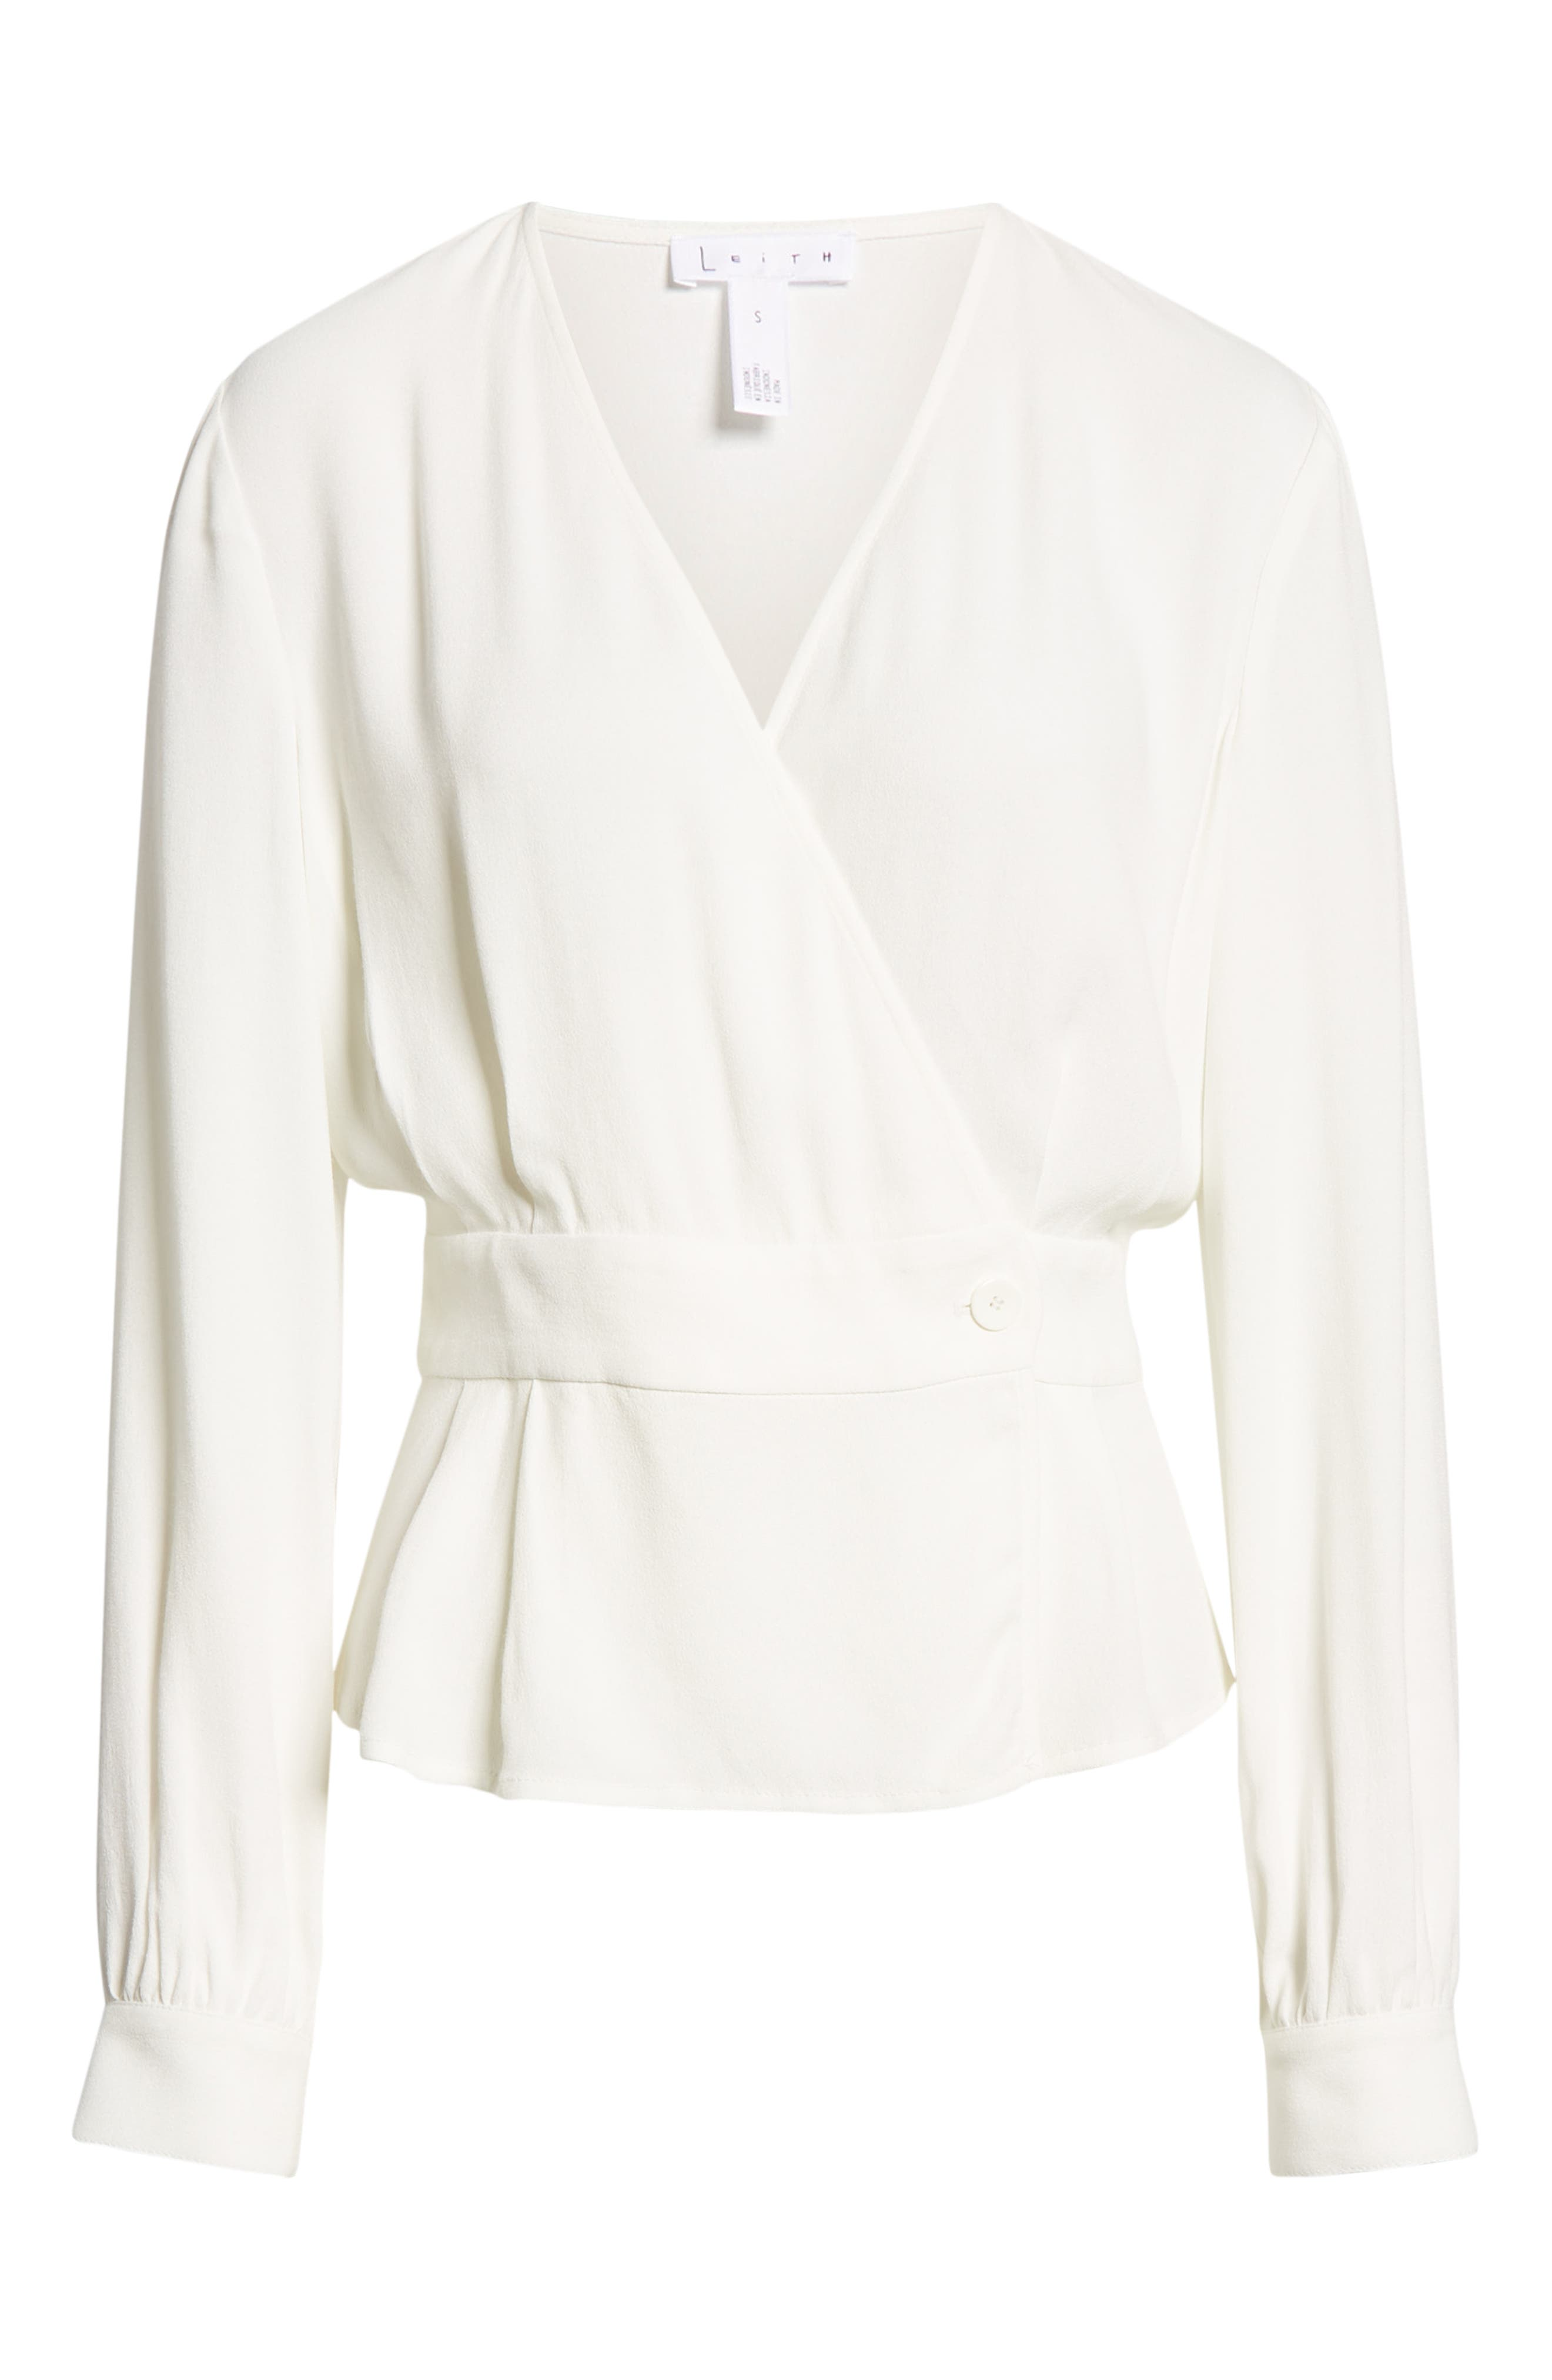 LEITH,                             Button Detail Wrap Top,                             Alternate thumbnail 6, color,                             IVORY